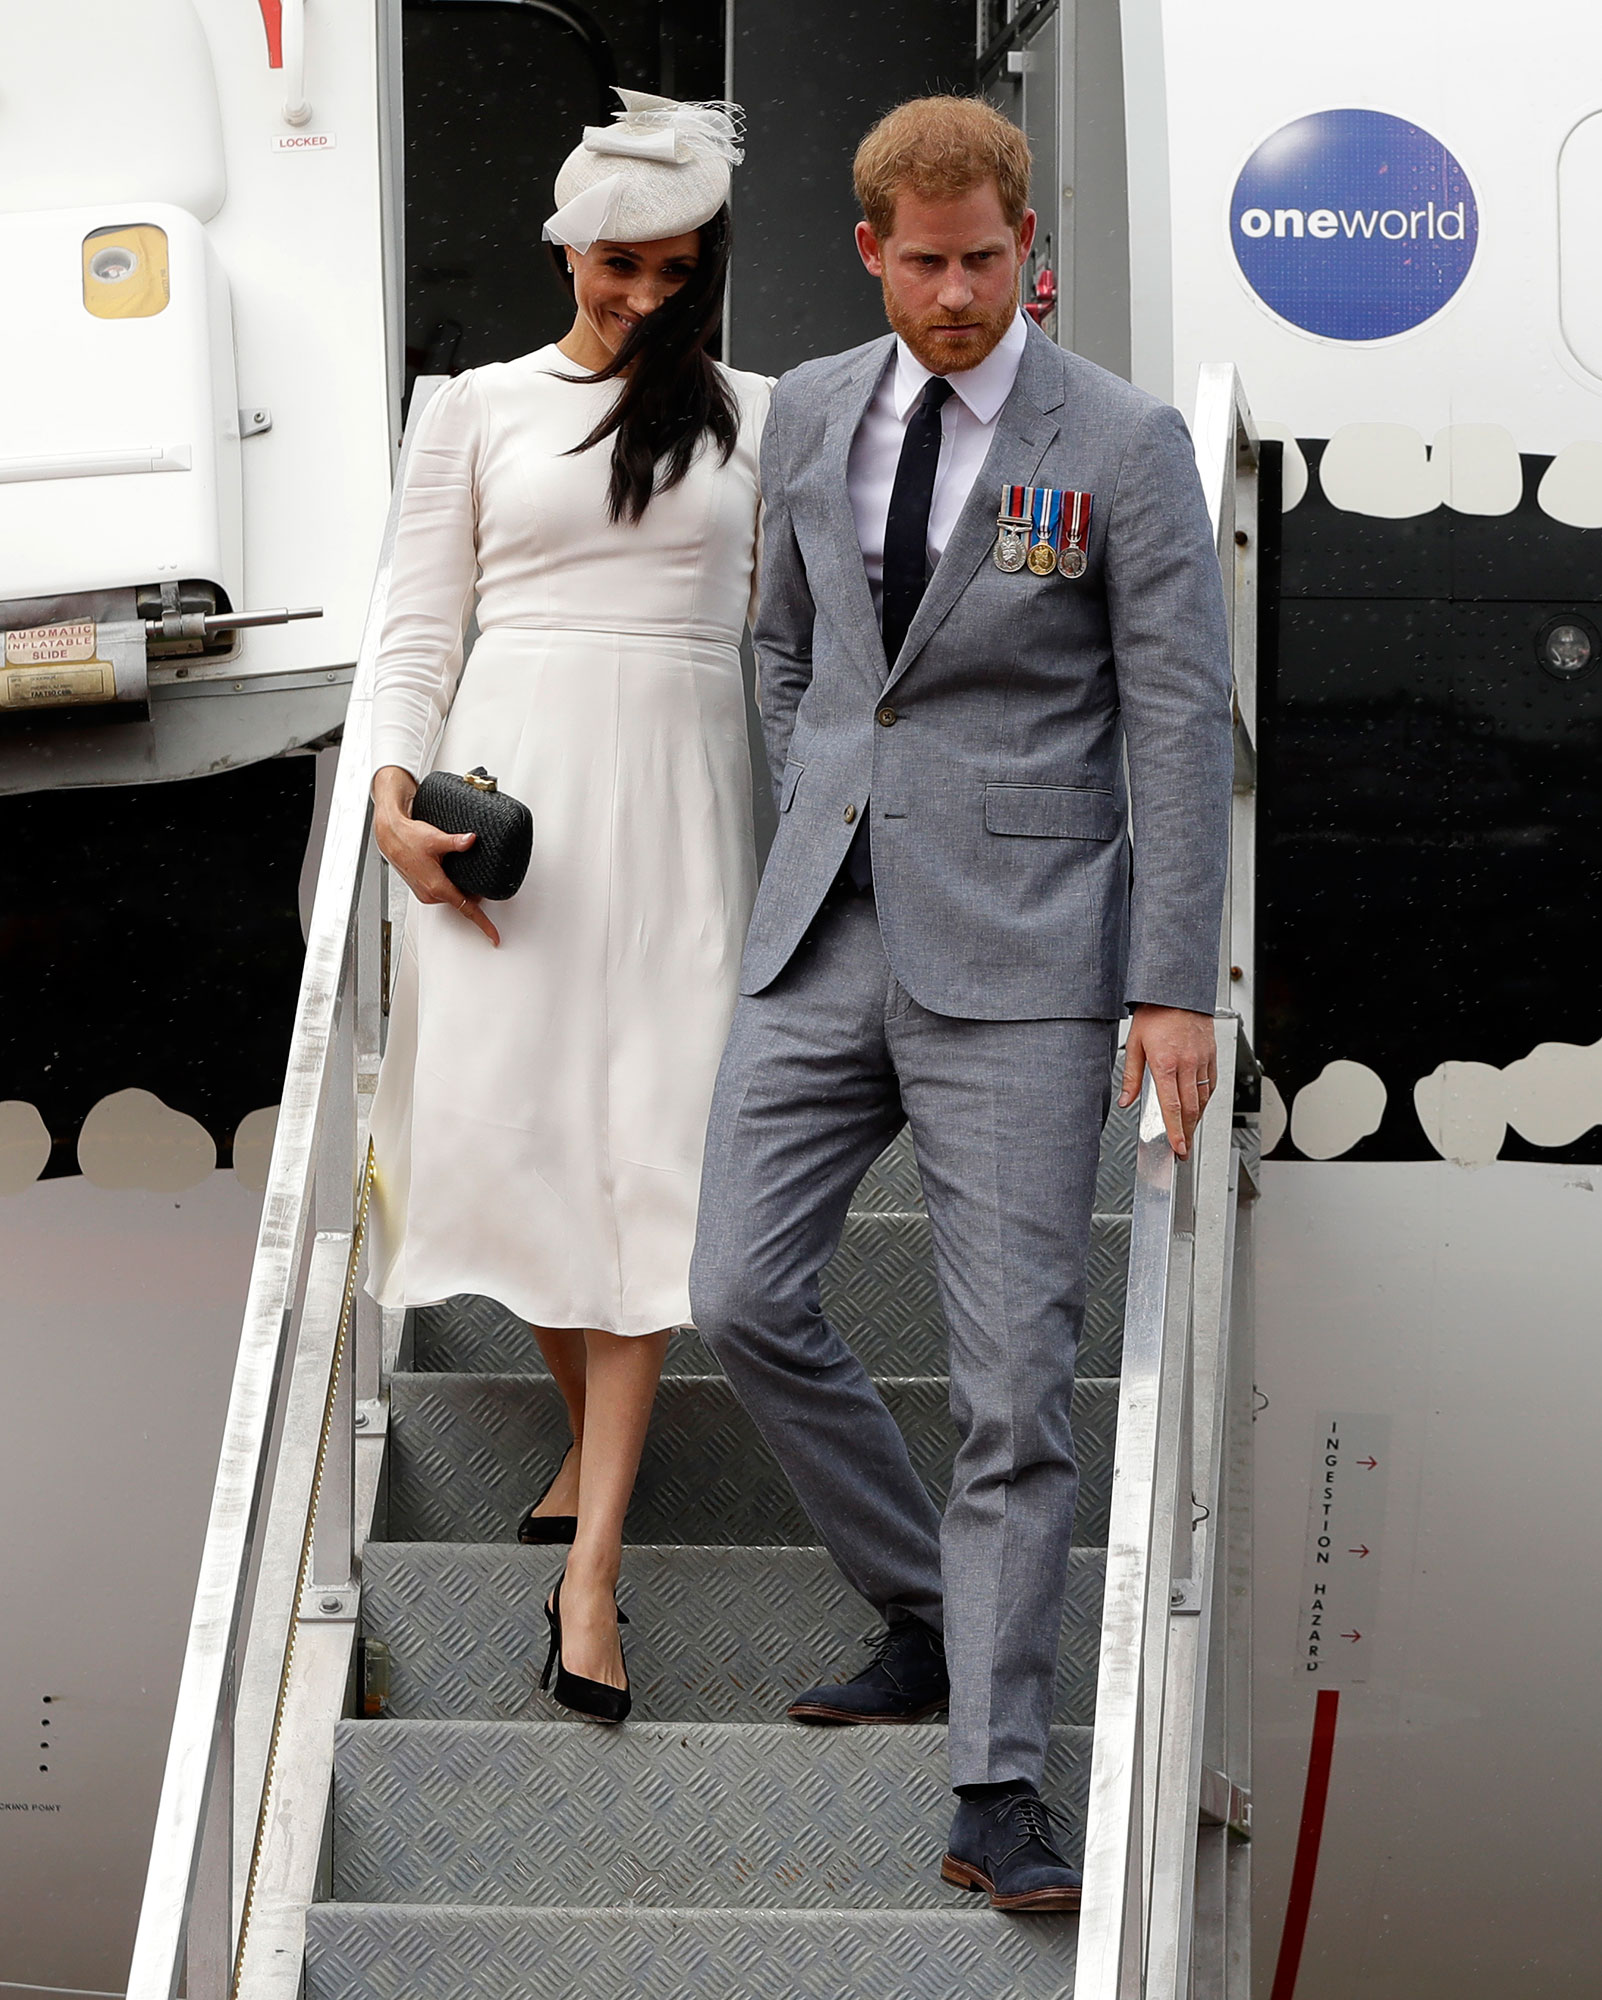 "<div class=""meta image-caption""><div class=""origin-logo origin-image none""><span>none</span></div><span class=""caption-text"">Britain's Prince Harry and Meghan, Duchess of Sussex disembark from their plane on their arrival in Suva, Fiji, Tuesday, Oct. 23, 2018. (Kirsty Wigglesworth, Pool/AP Photo)</span></div>"